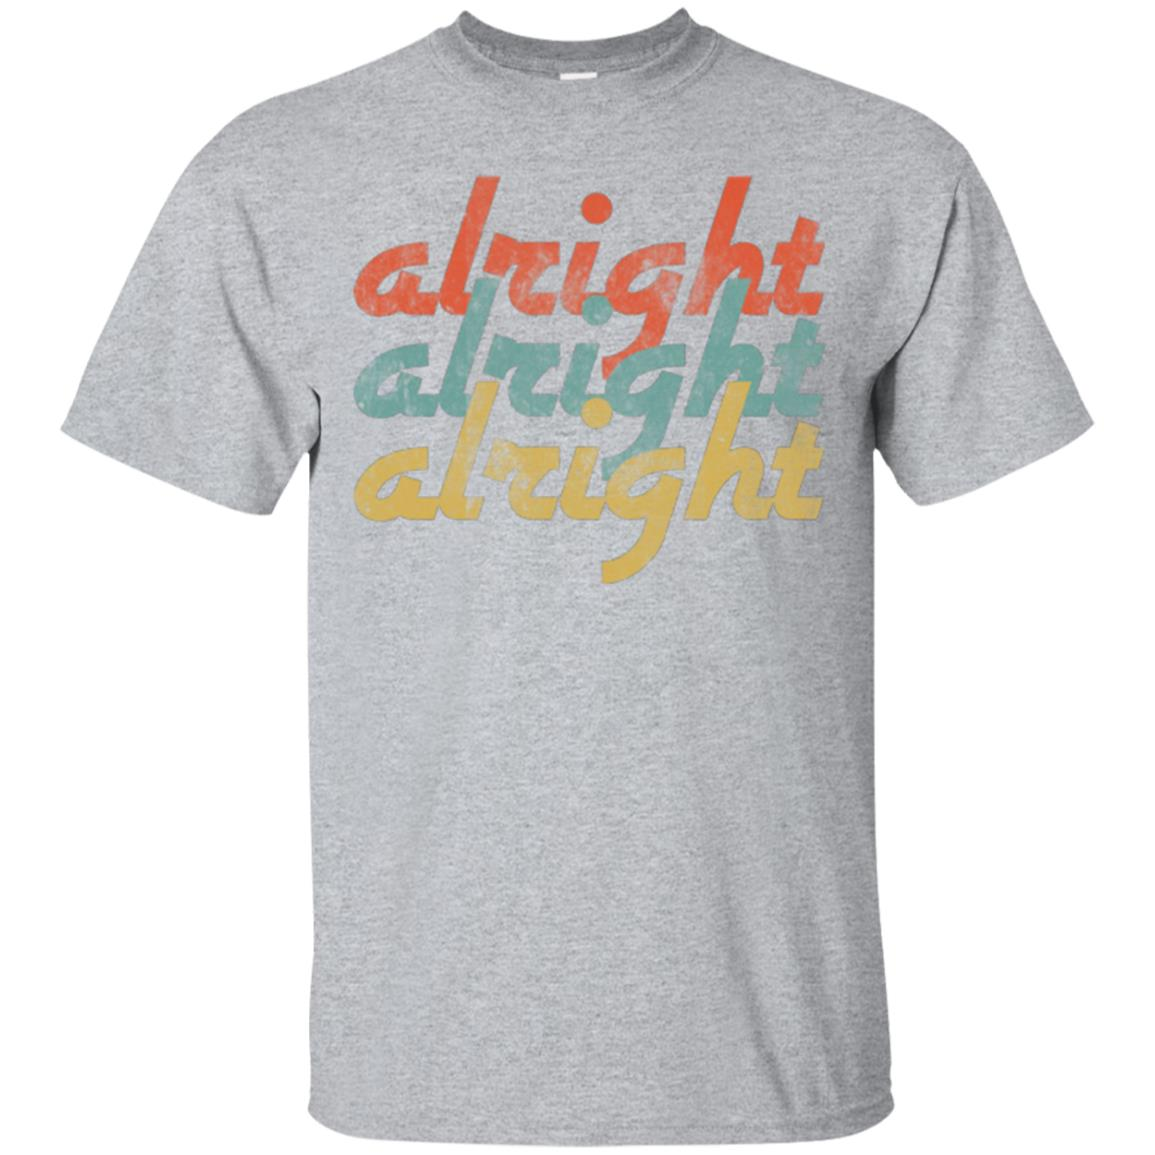 Alright Alright Shirt Funny Retro Classic Vintage Distressed 99promocode